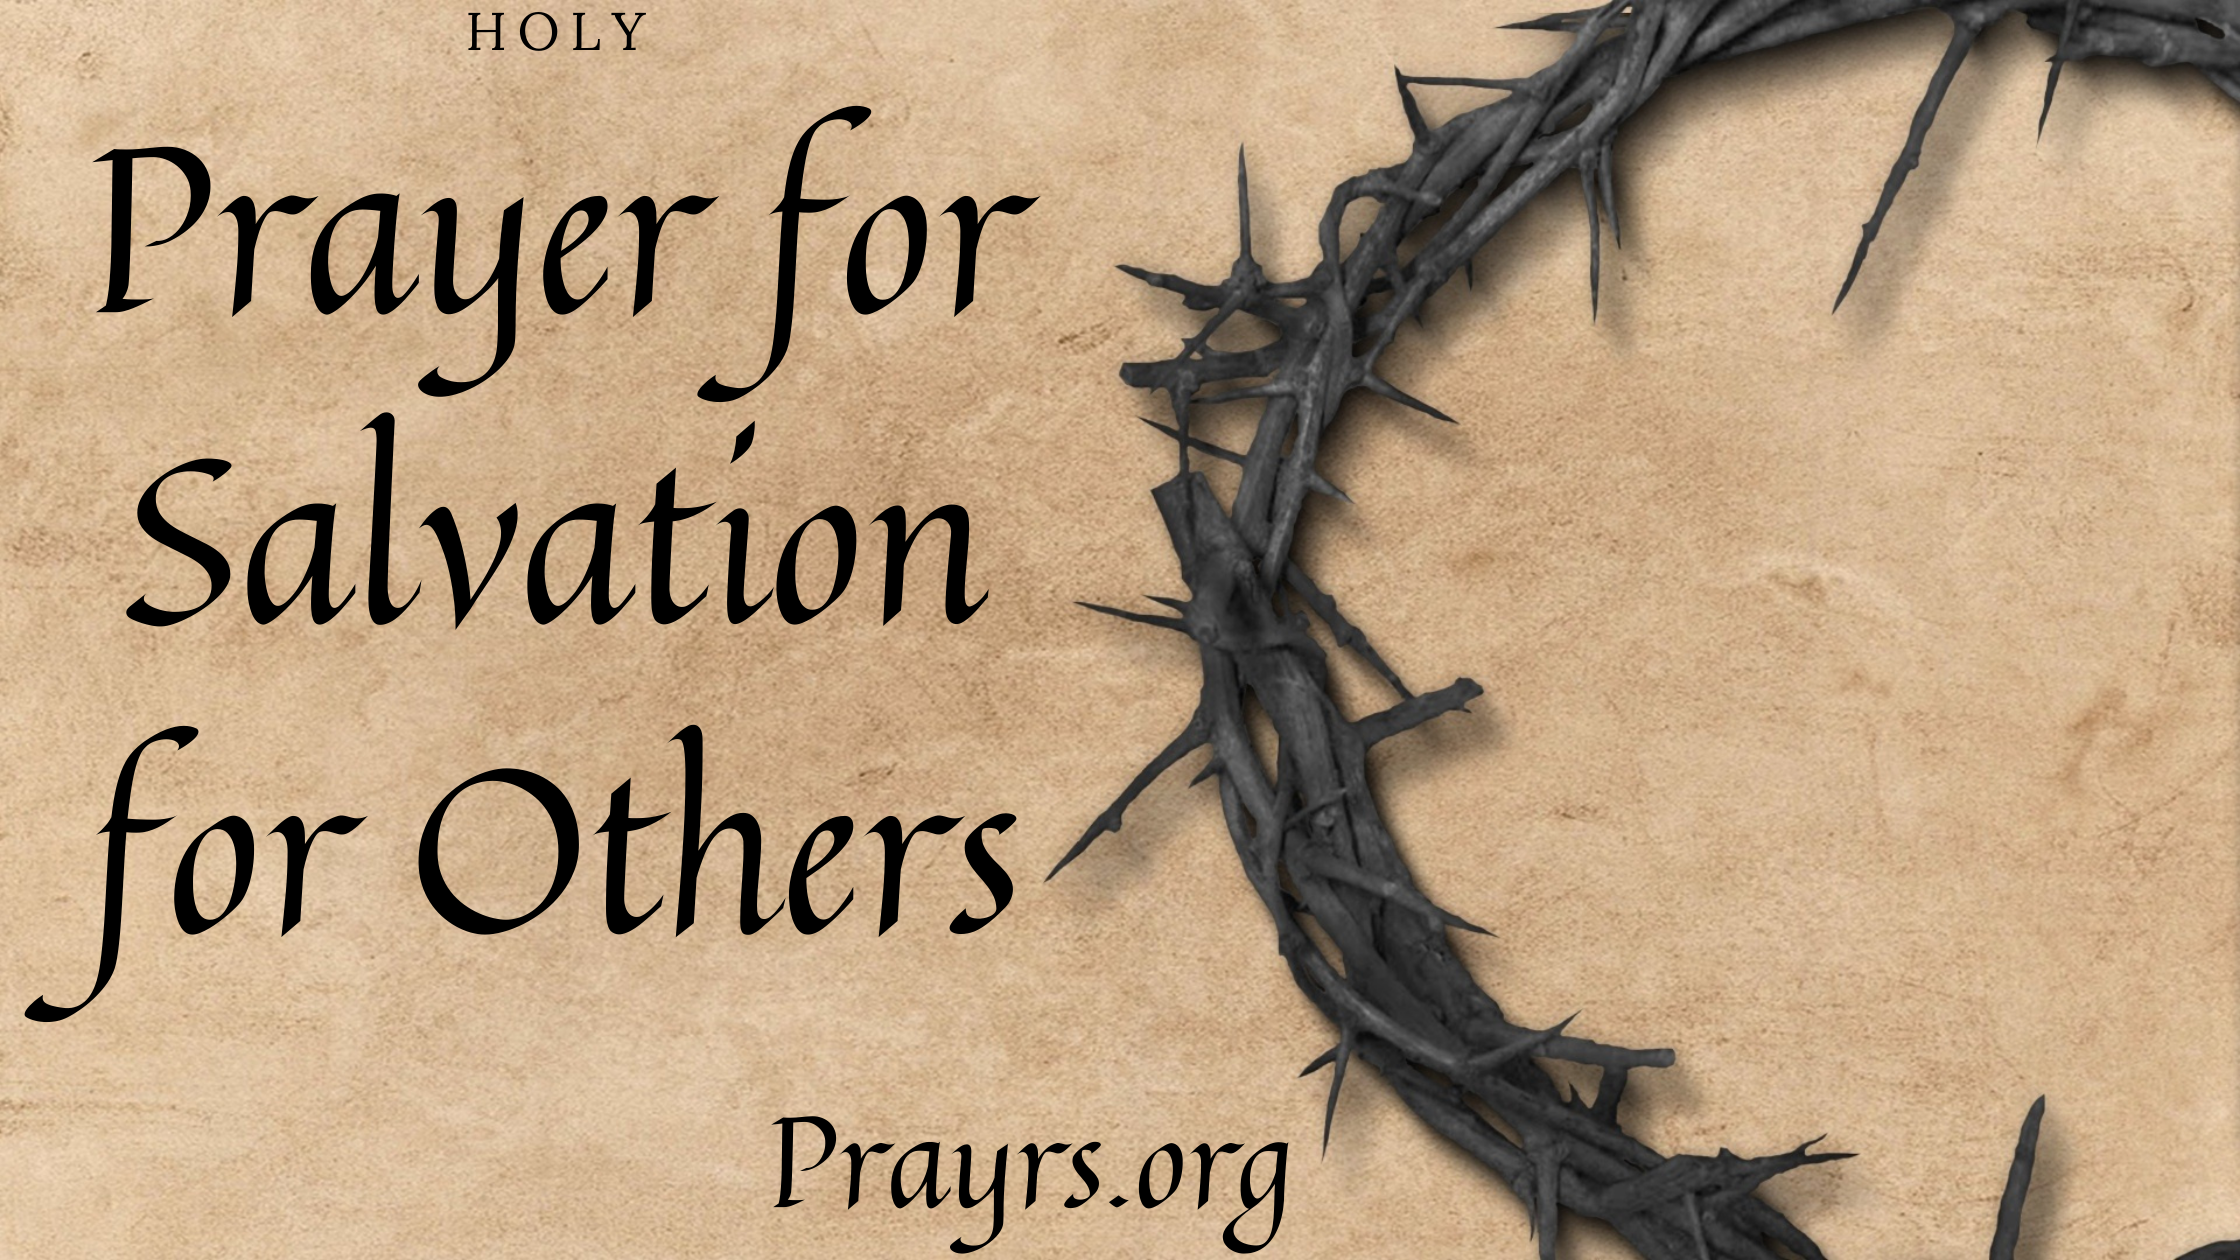 Holy Prayer for Salvation for Others